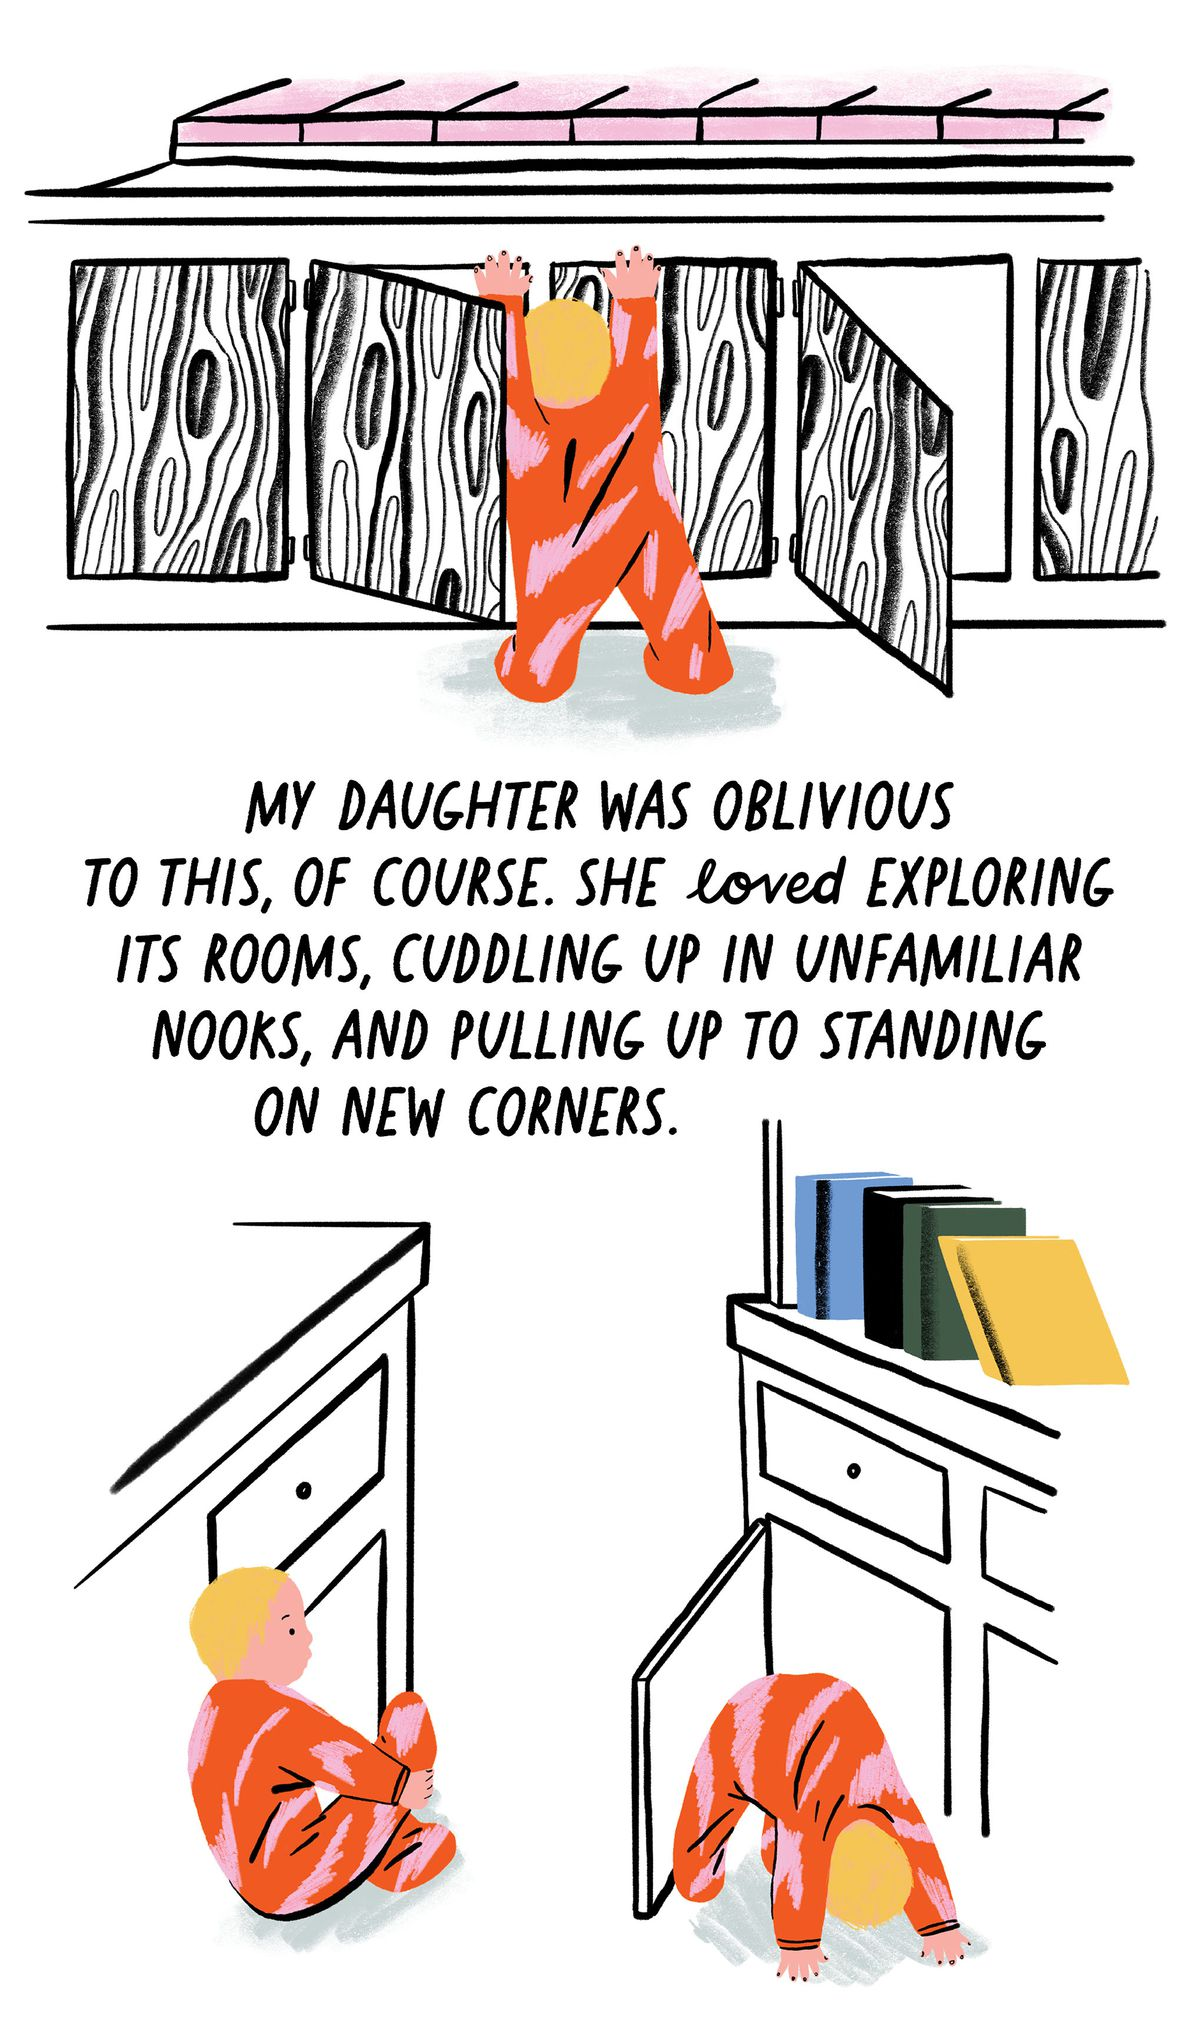 My daughter was oblivious to this, of course. She loved exploring its rooms, cuddling up in unfamiliar nooks, and pulling up to standing on new corners.